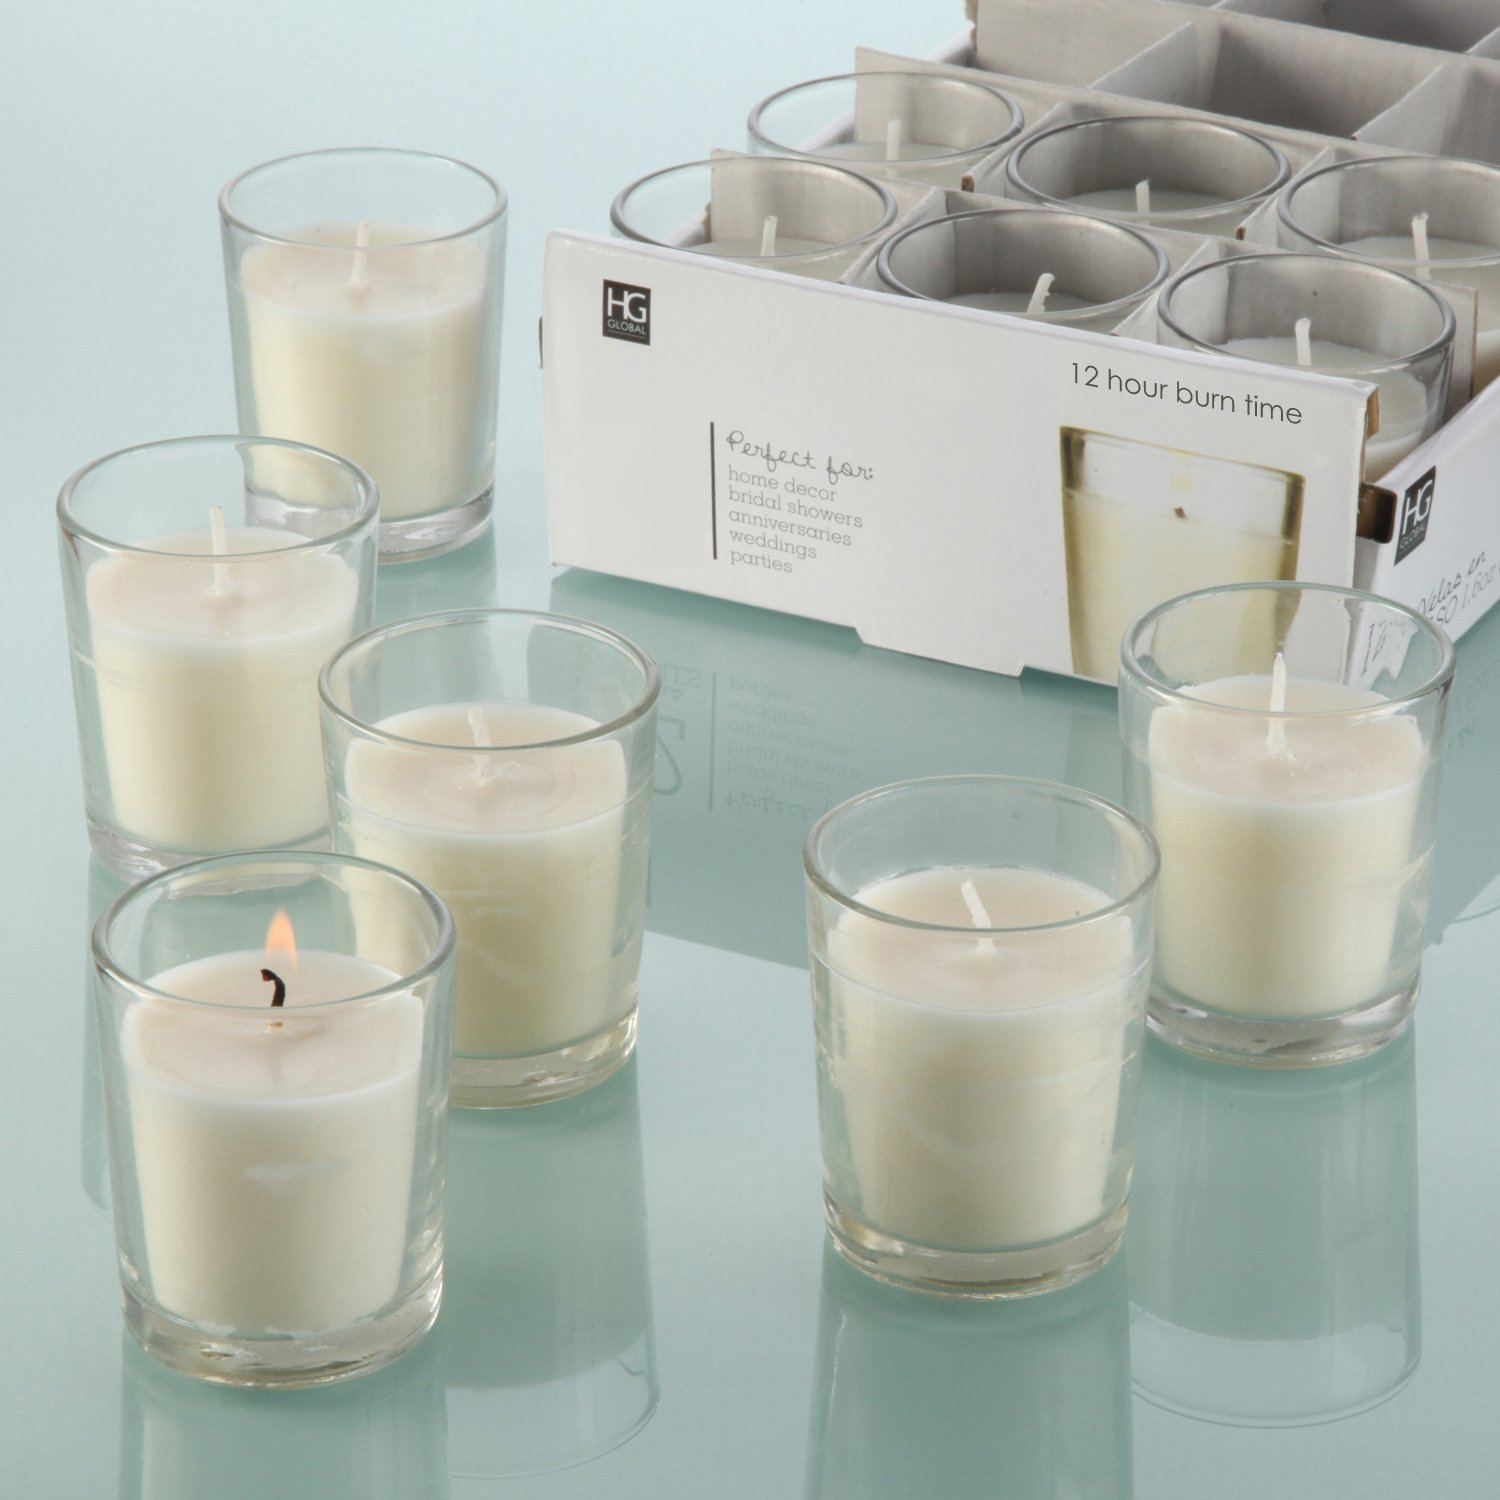 shop amazon com candles holders hosley set of 48 unscented clear glass wax filled votive candles 12 hour burn time glass votive hand poured candle included ideal gift or use for